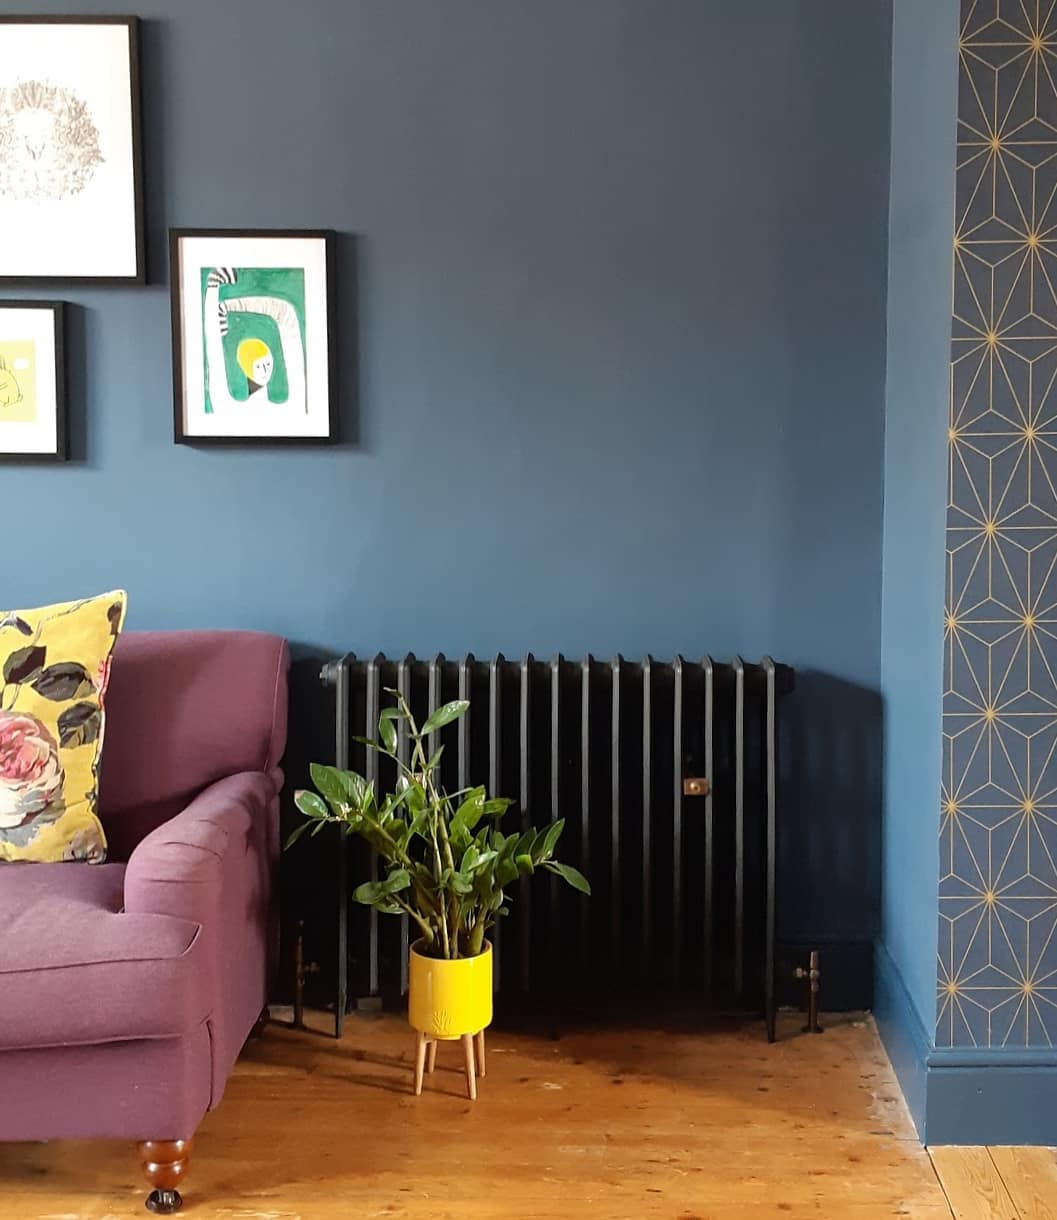 A black cast-iron radiator on a navy wall.